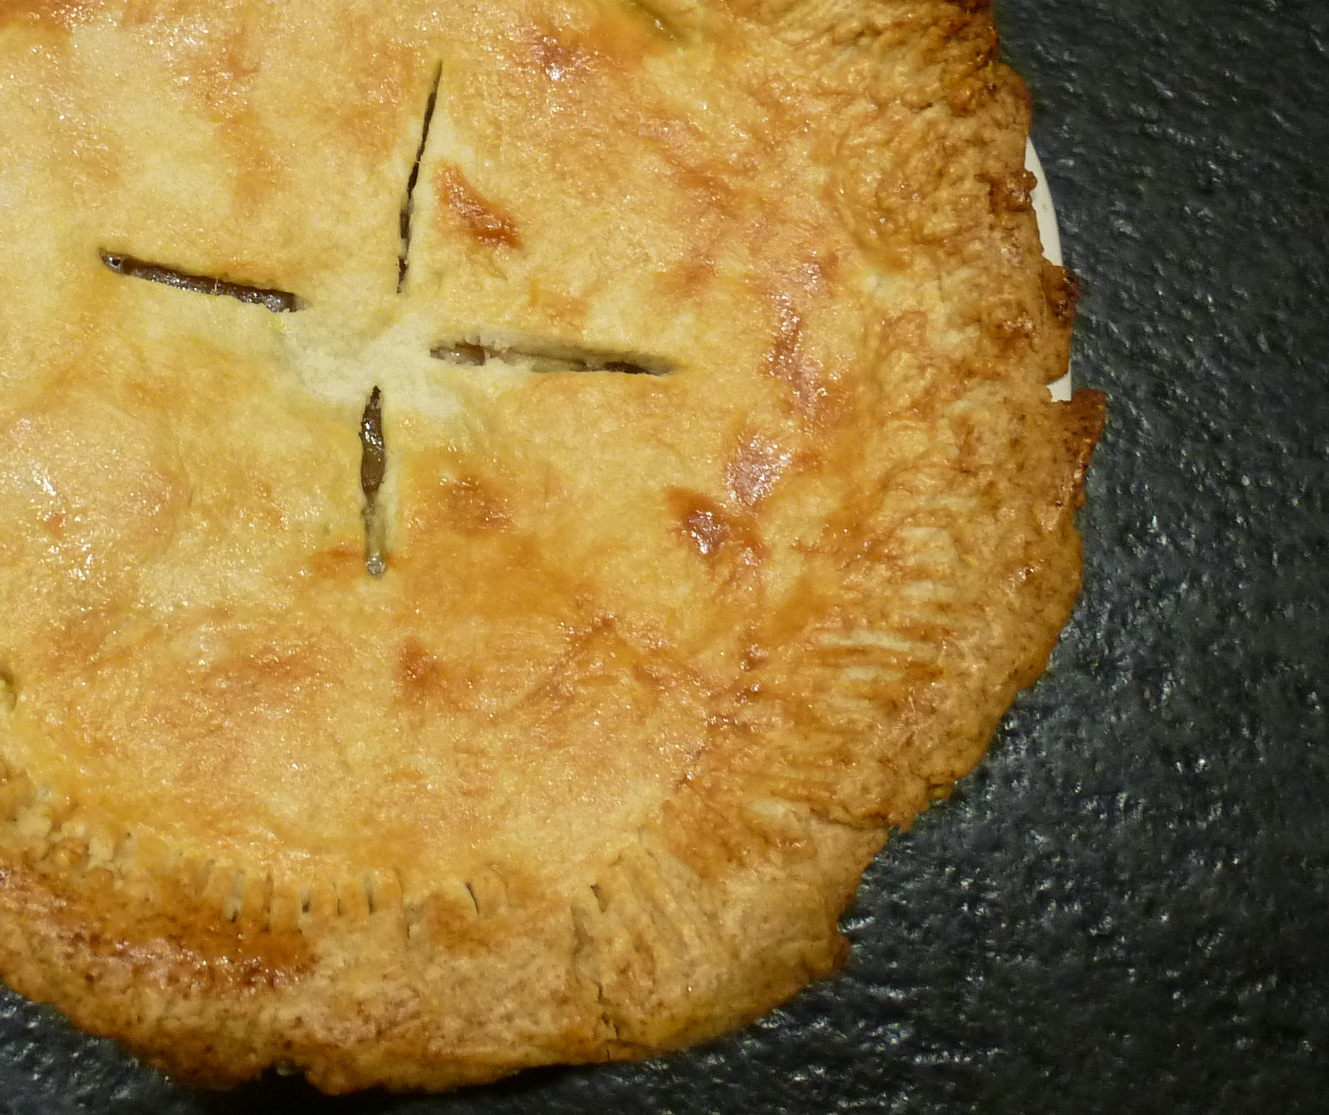 Forgive my poor pie-crust pinching skills...